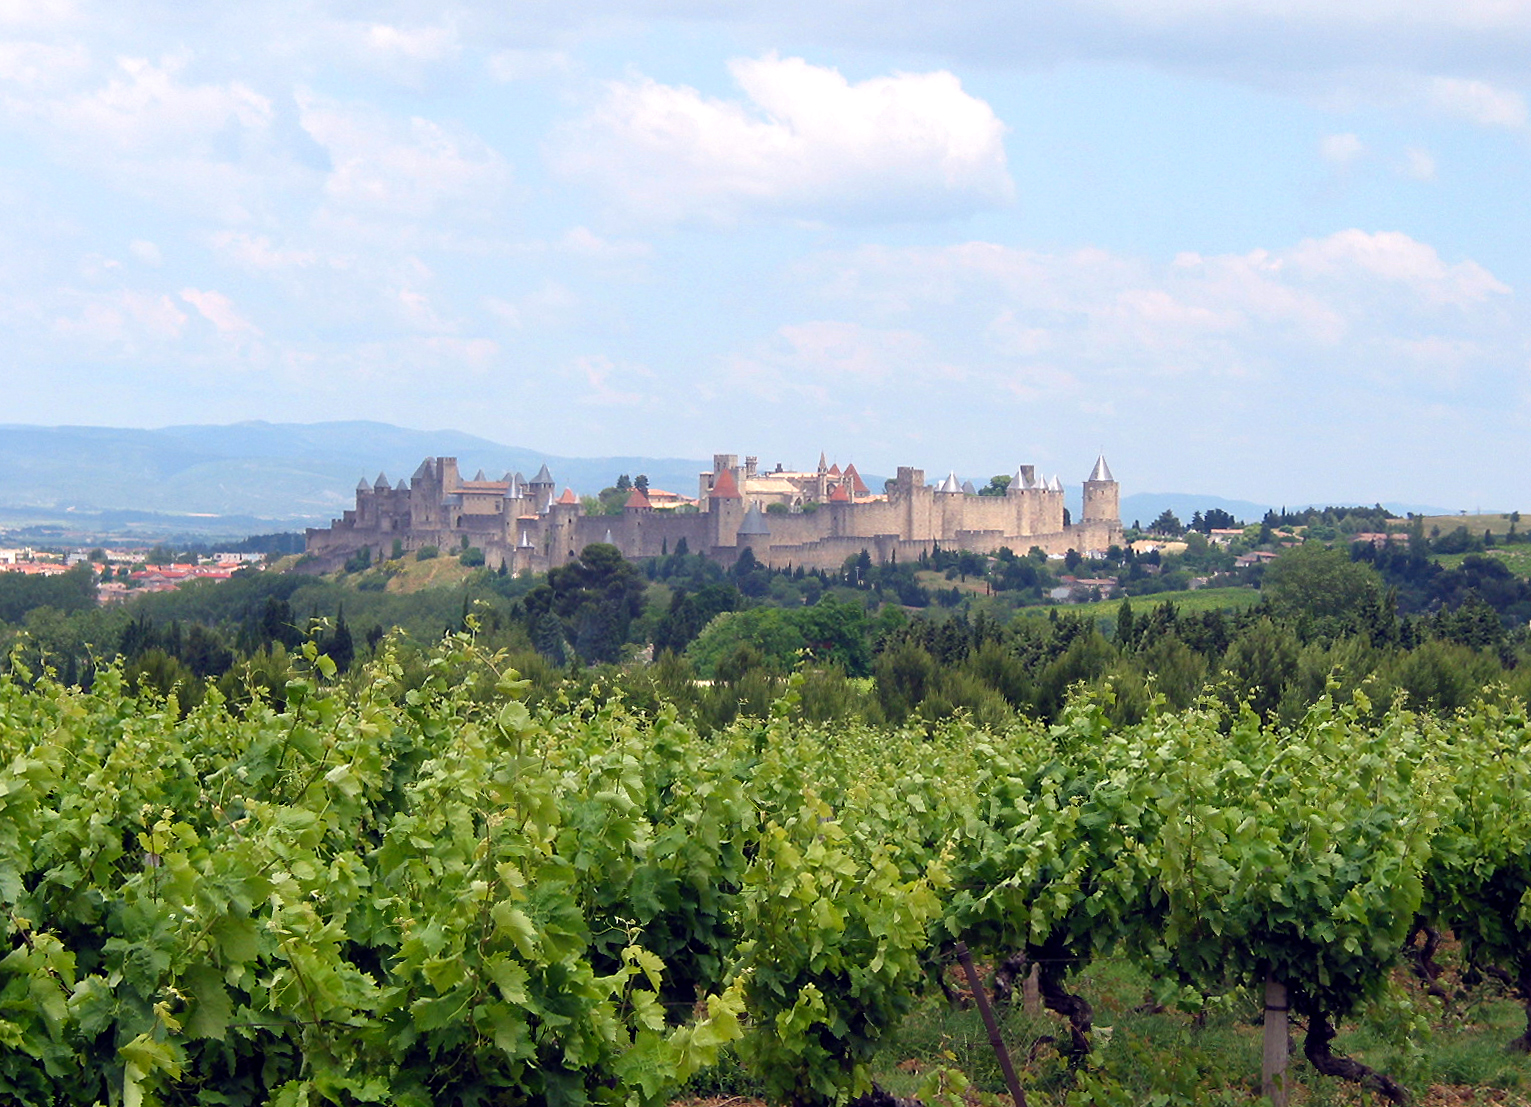 Good people of Languedoc - Carcassonne, pays de cathars